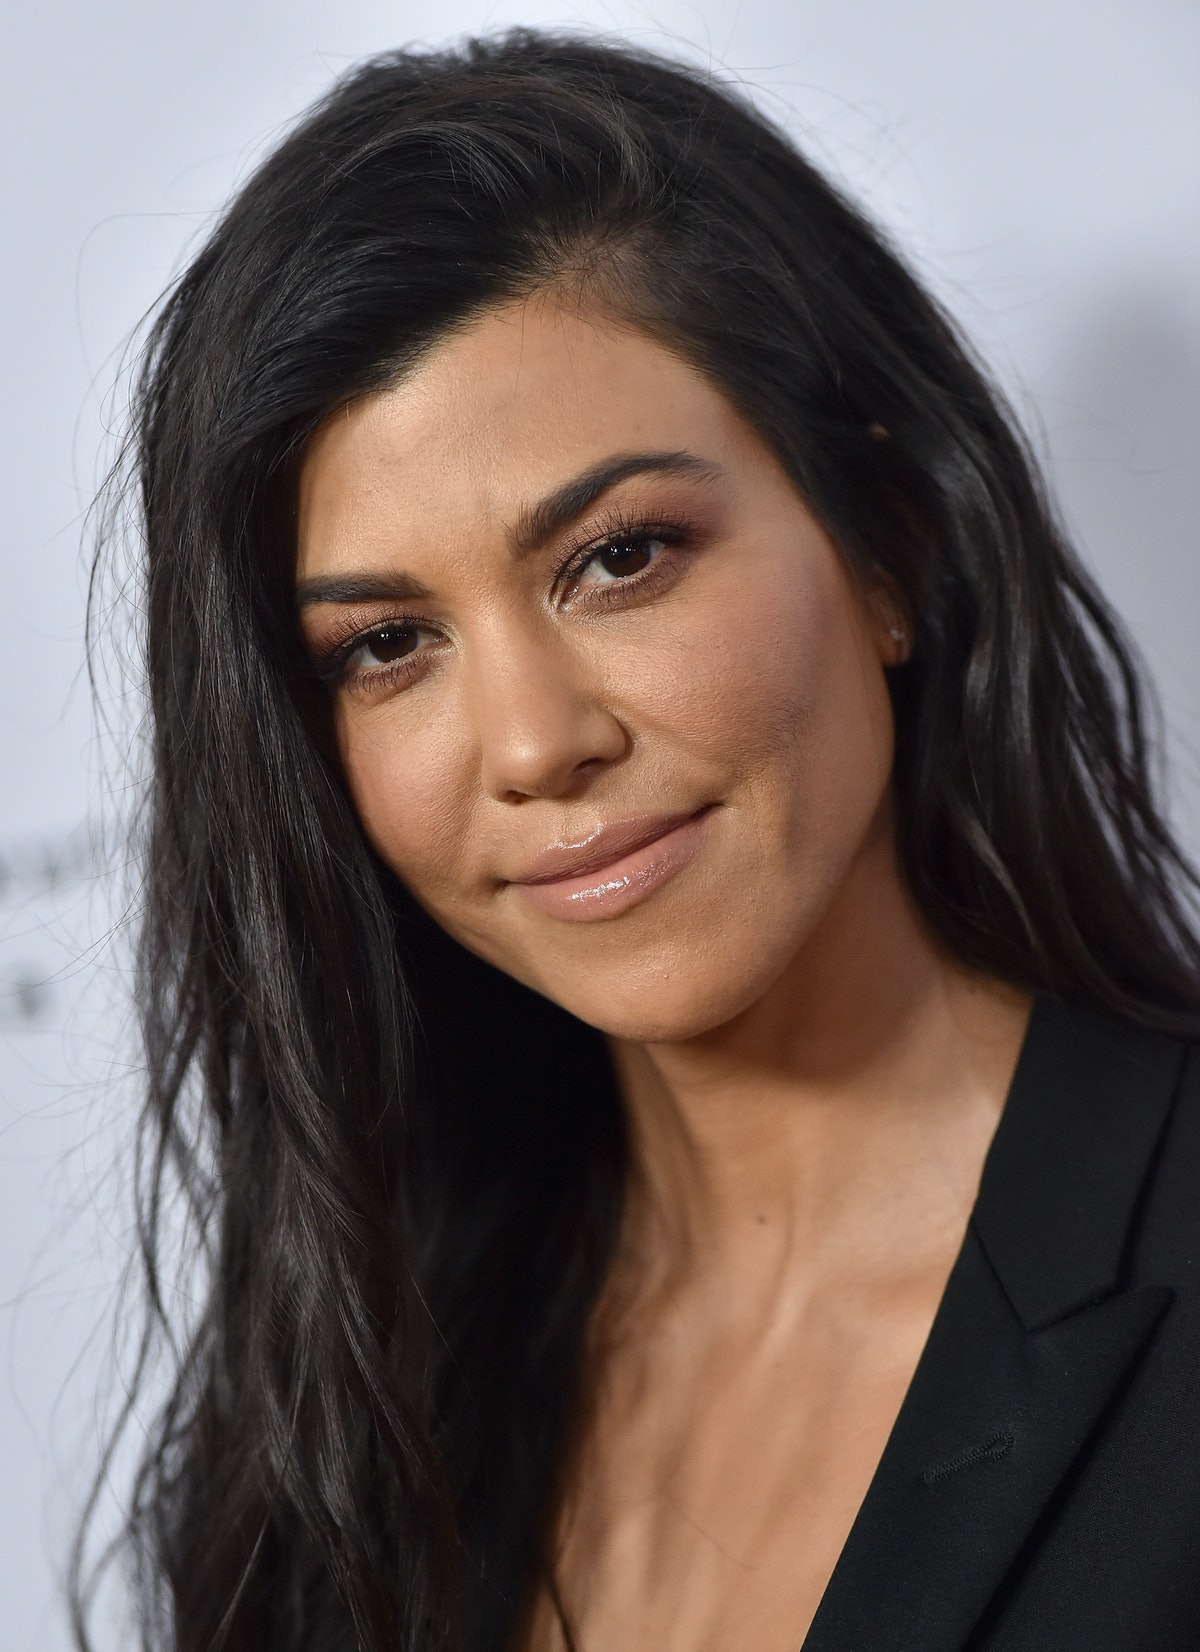 HOLLYWOOD, CA - APRIL 12:  TV personality Kourtney Kardashian arrives at the Premiere of Open Road F...